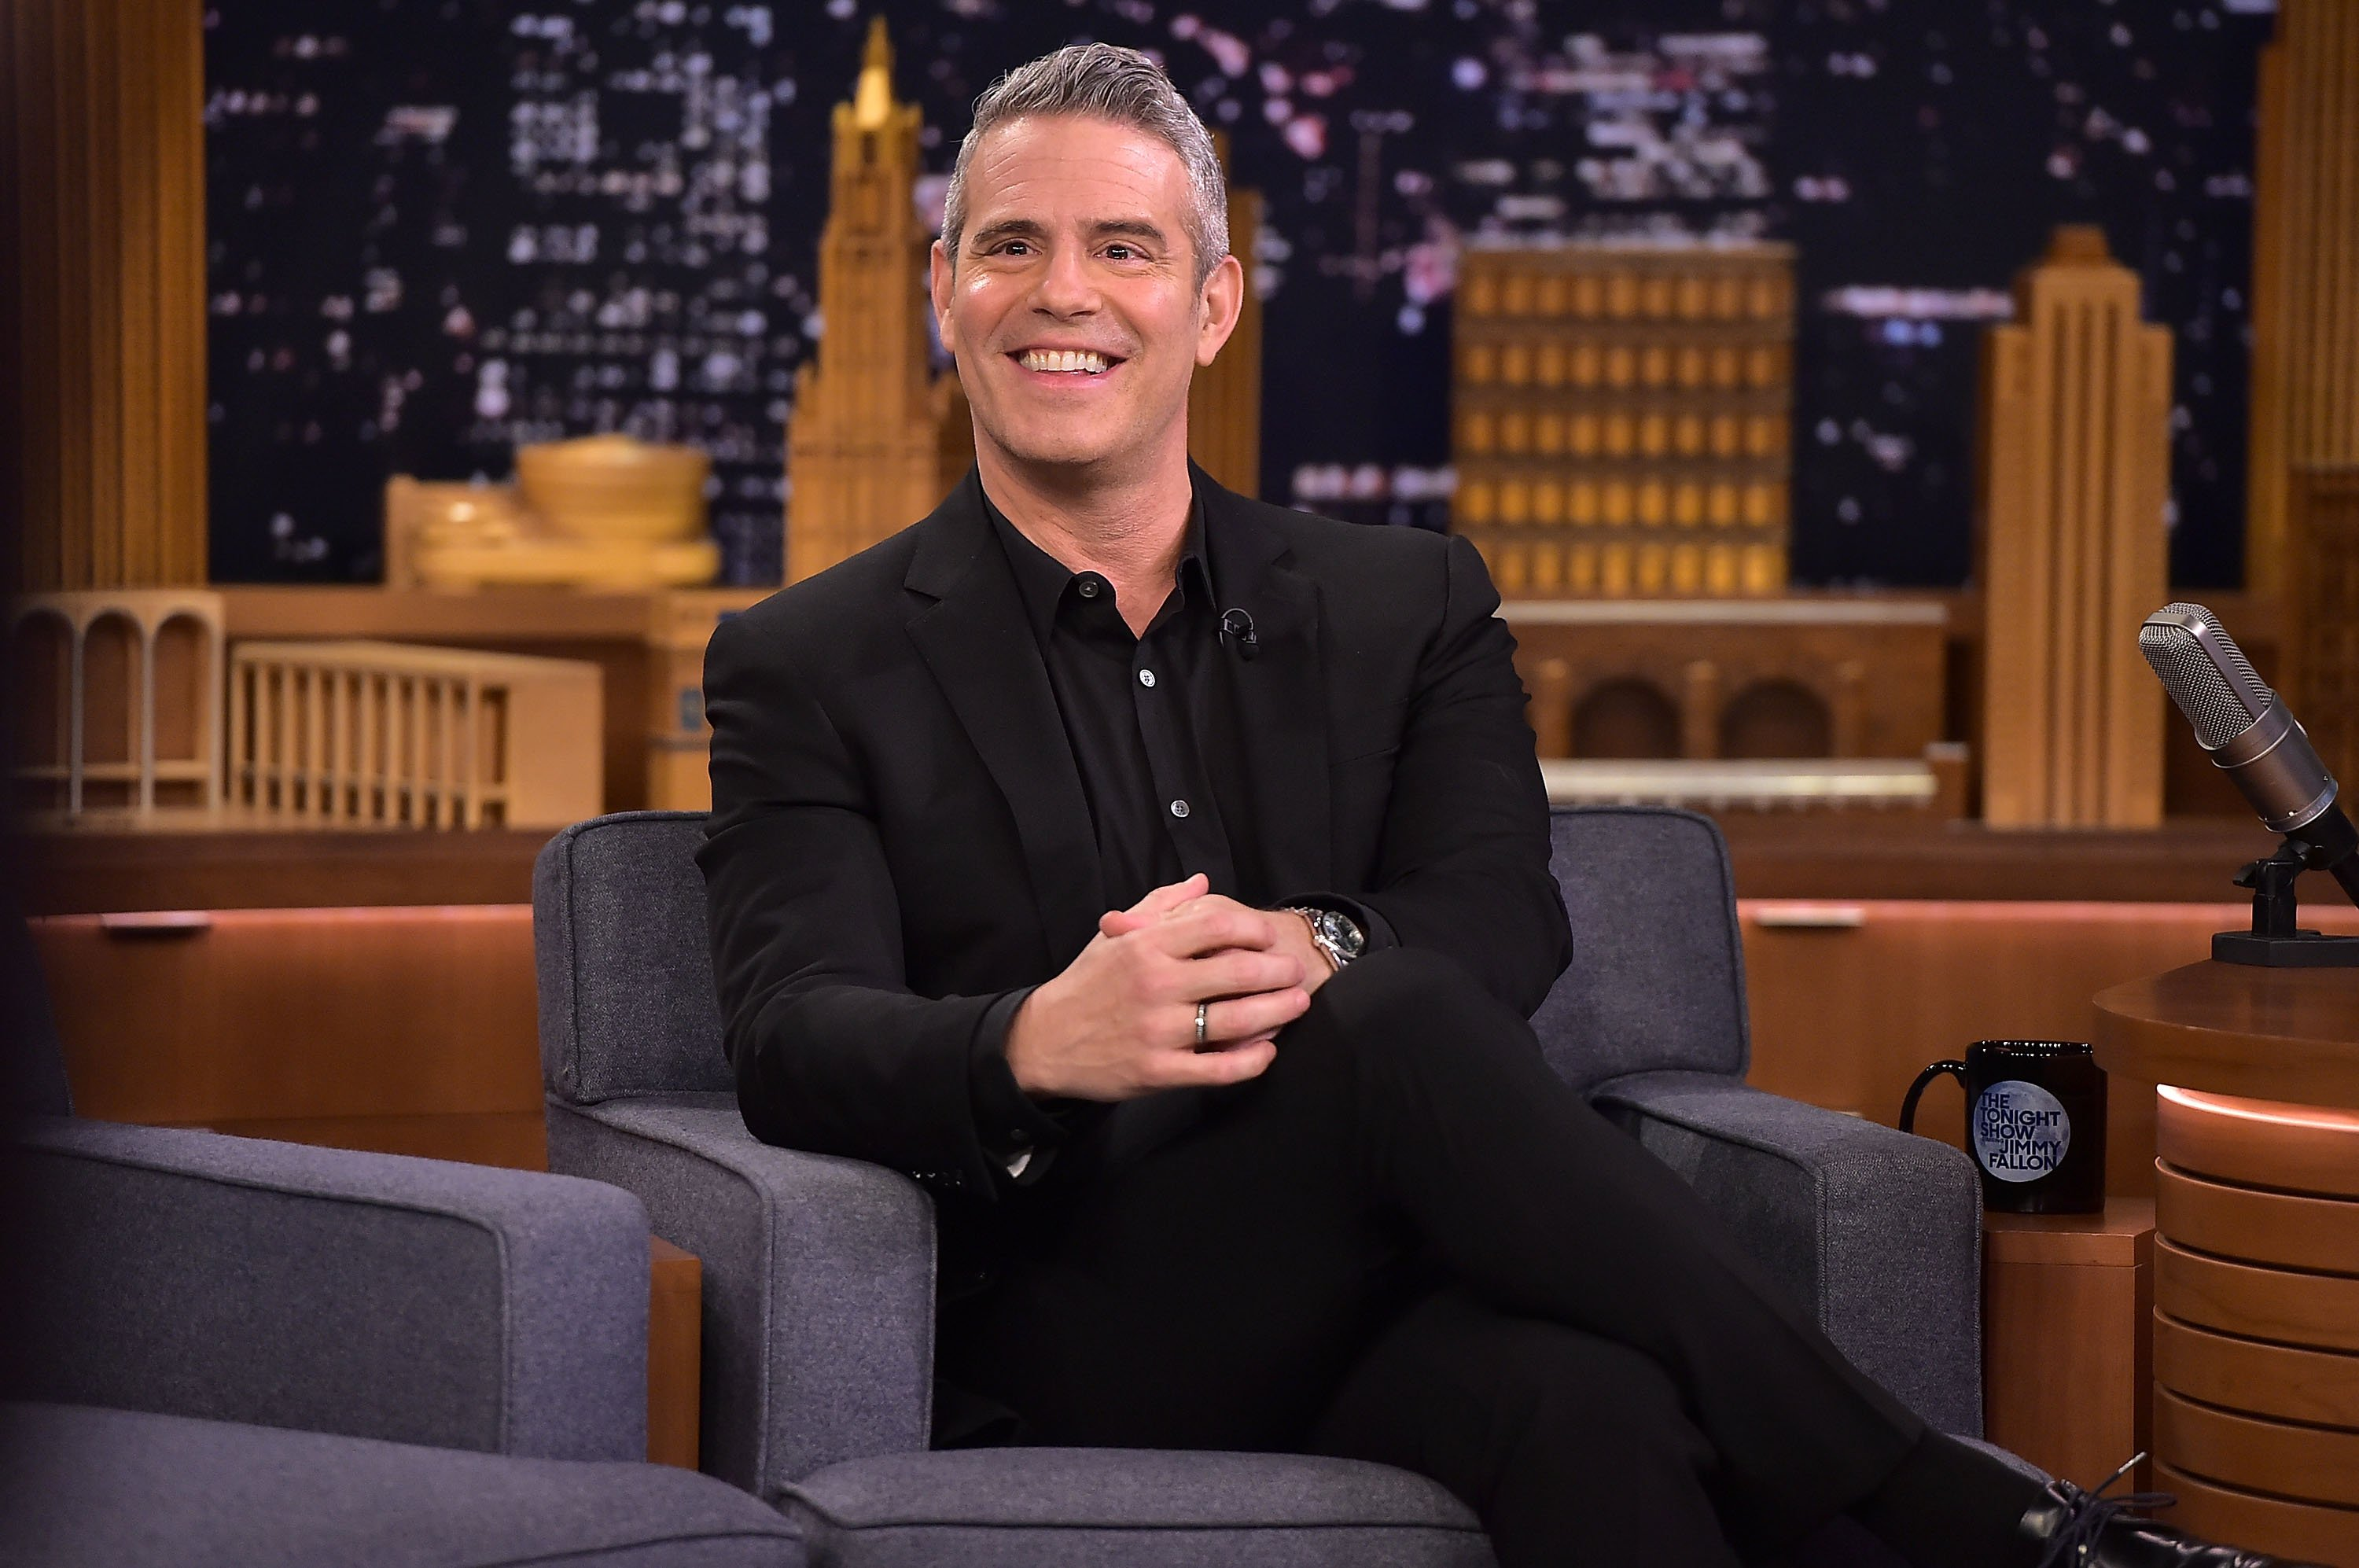 """Andy Cohen visits """"The Tonight Show Starring Jimmy Fallon"""" on December 5, 2018 in New York City 